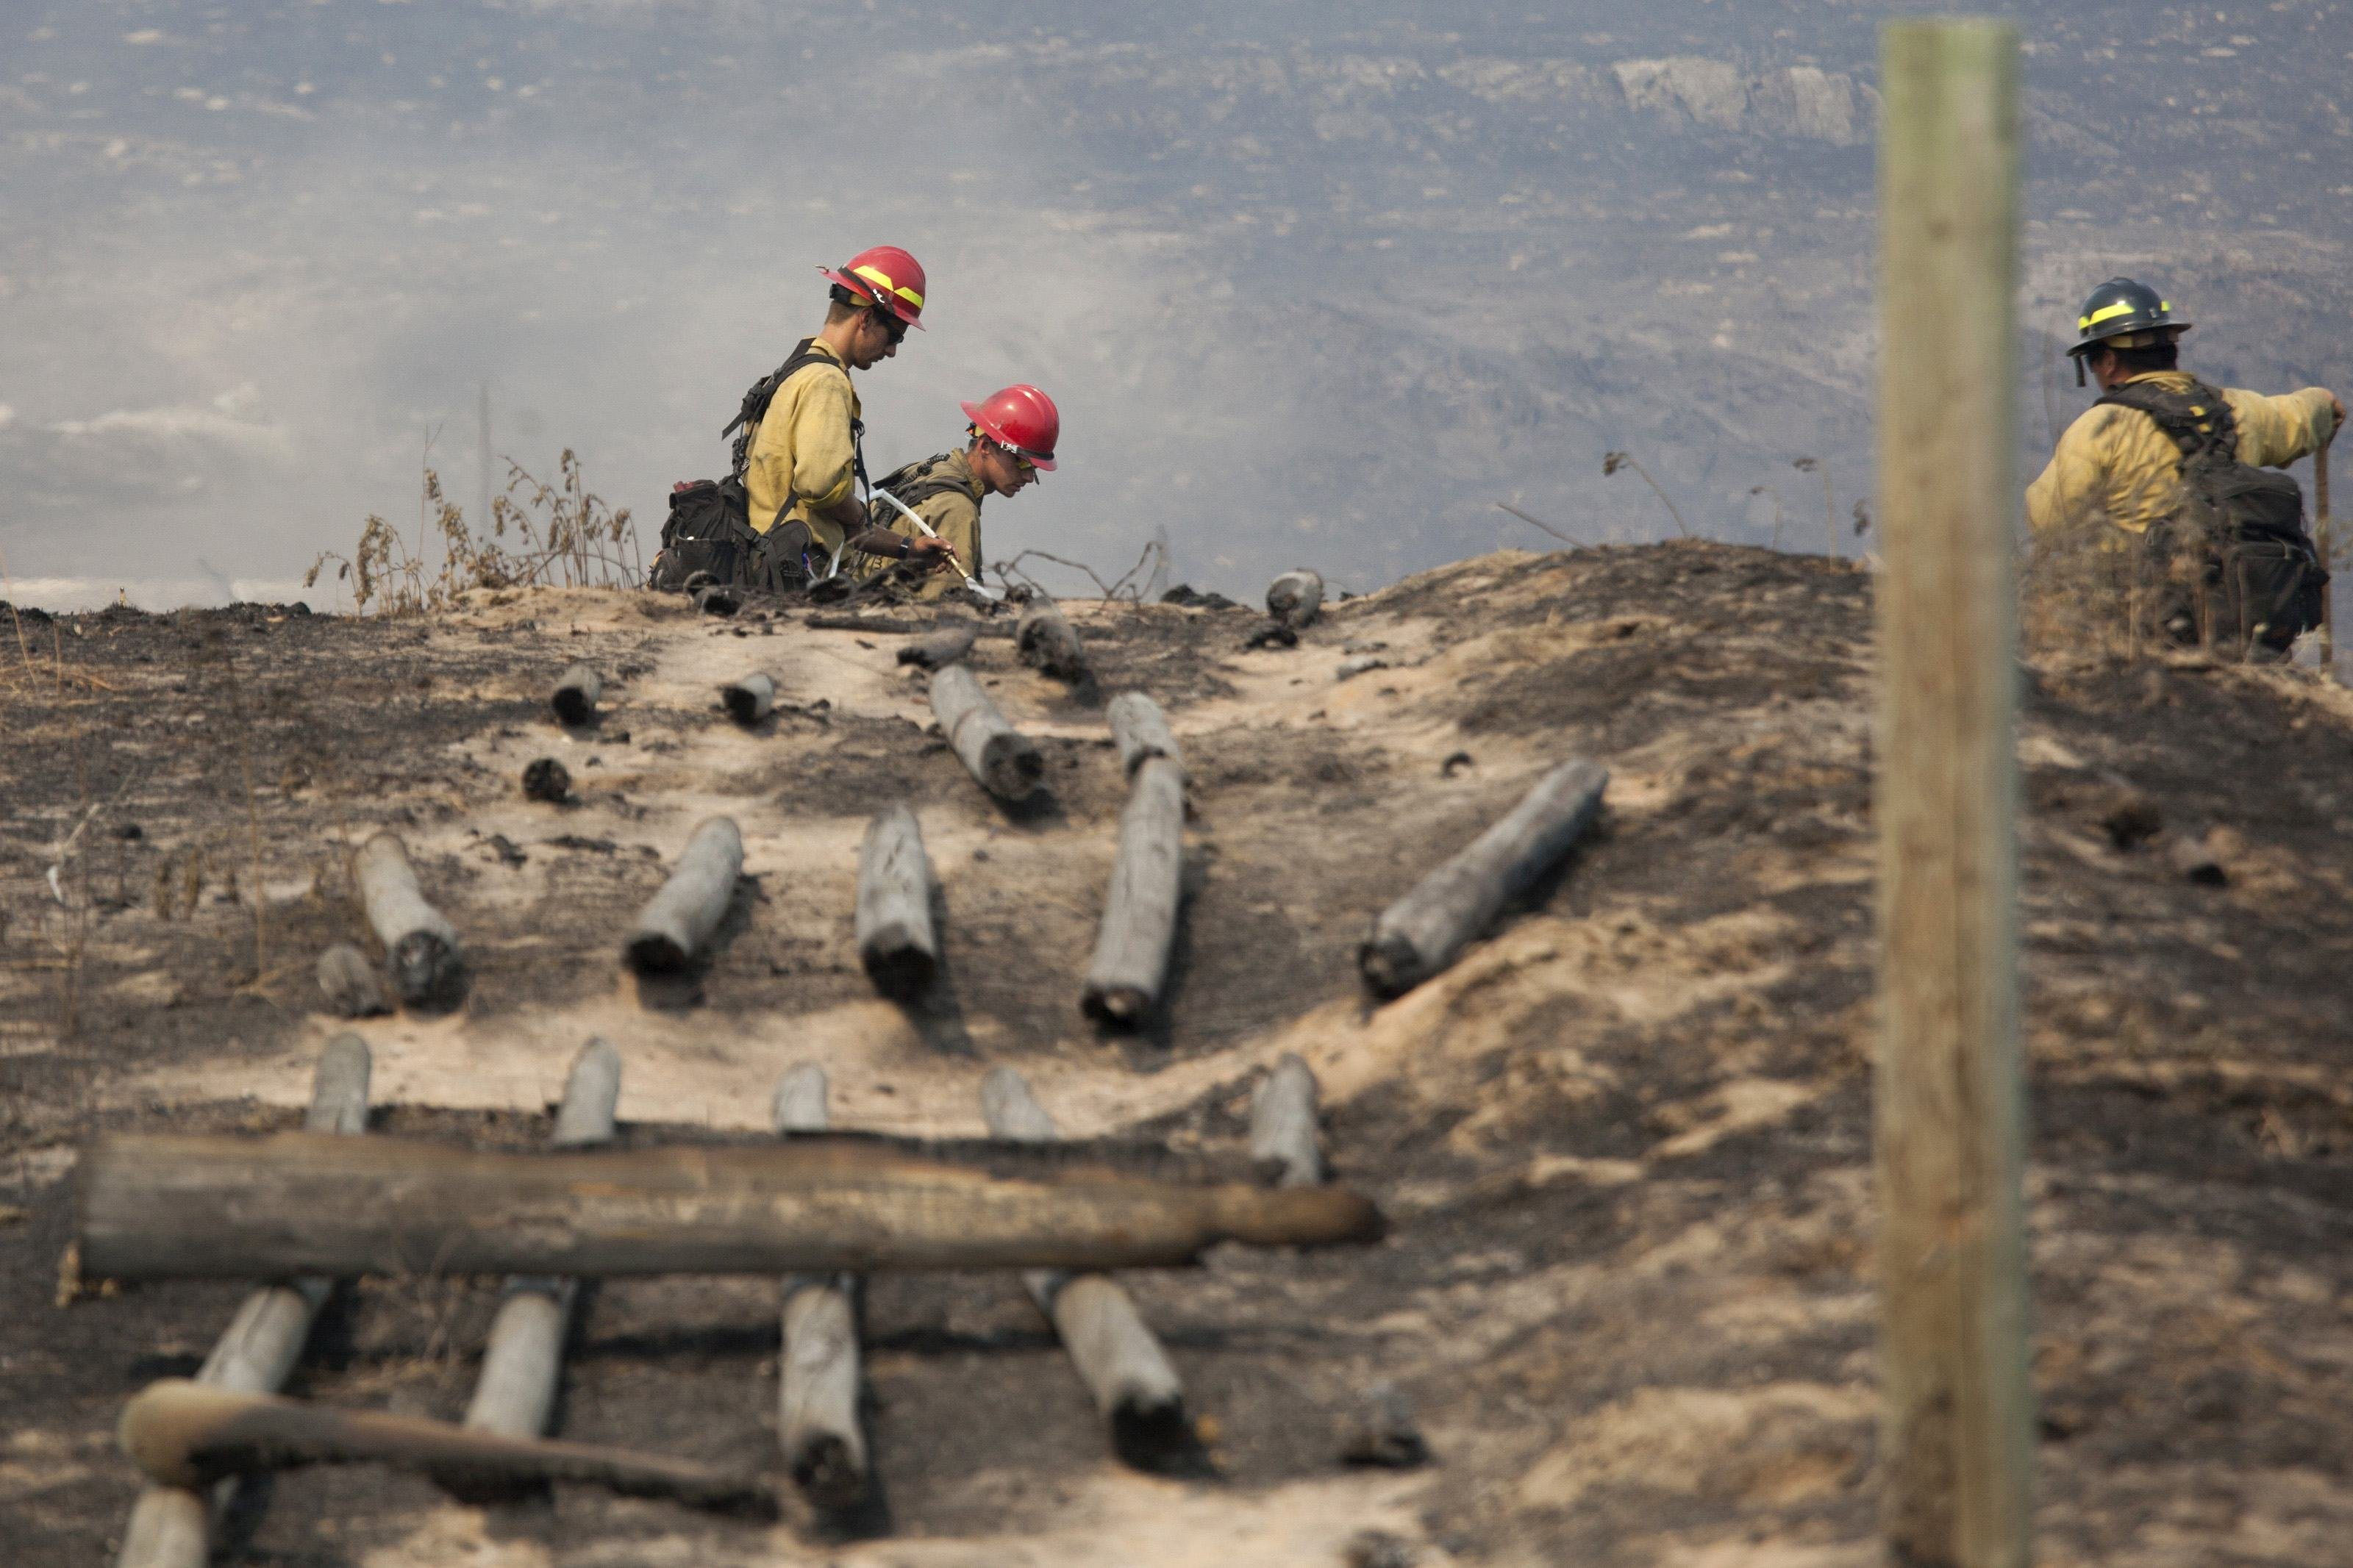 Firefighters work in a field near a burnt fence that was hit by the Carlton Complex Fire near Brewster, Washington on July 20, 2014.